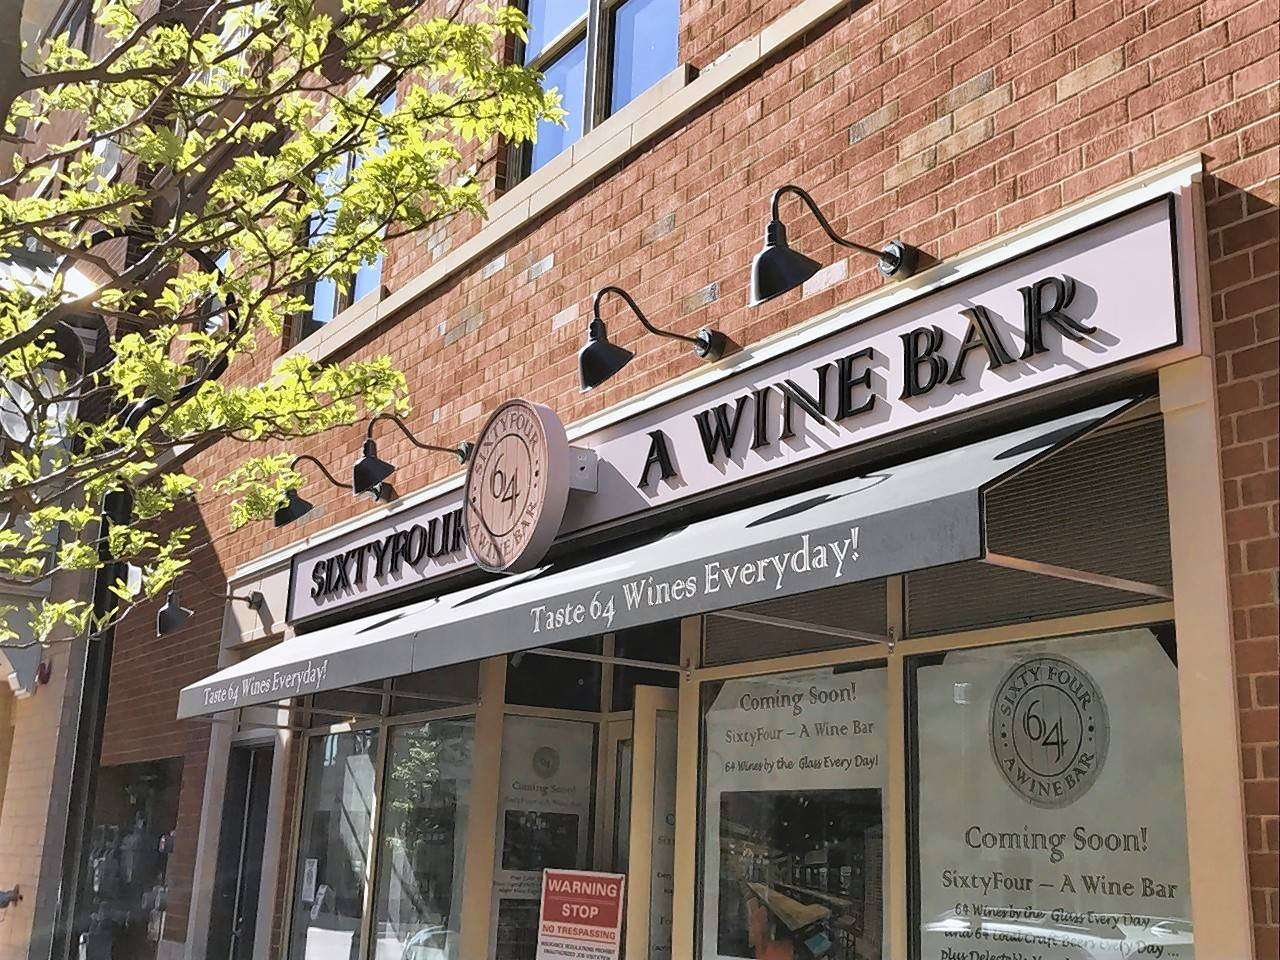 SixtyFour -- A Wine Bar is within easy walking distance of the Hotel Indigo in downtown Naperville.